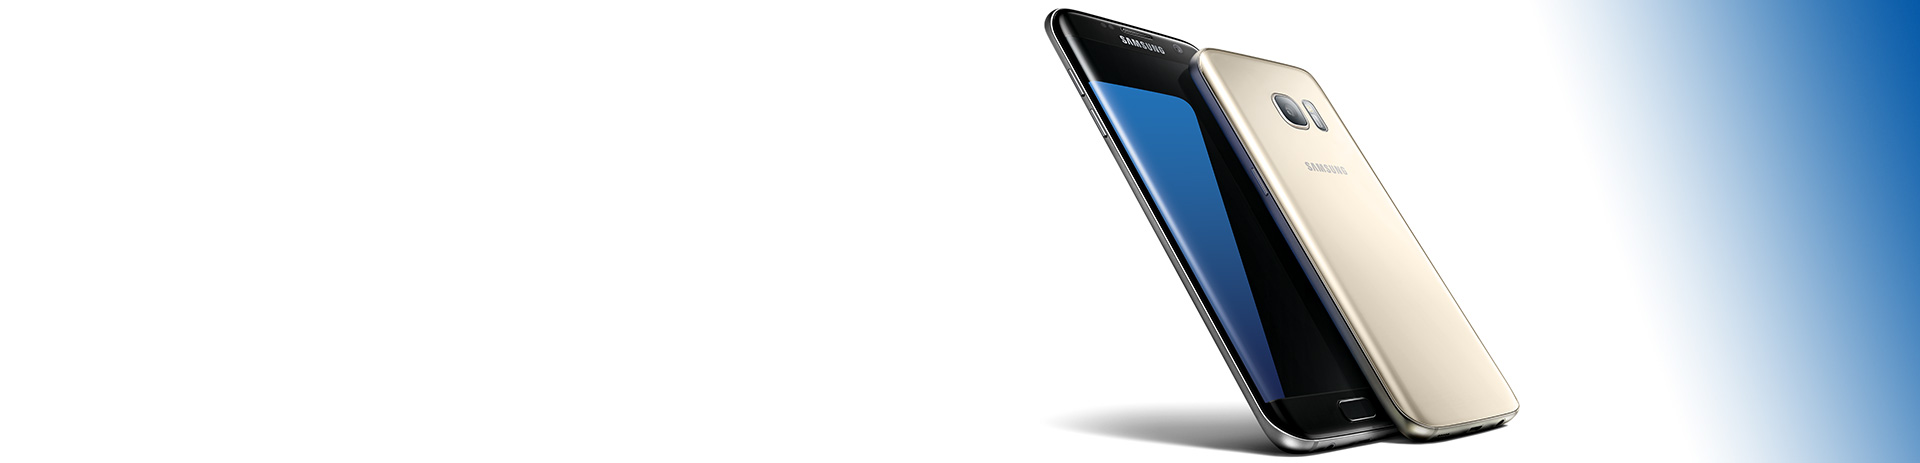 Galaxy S7 / S7 edge bei A1